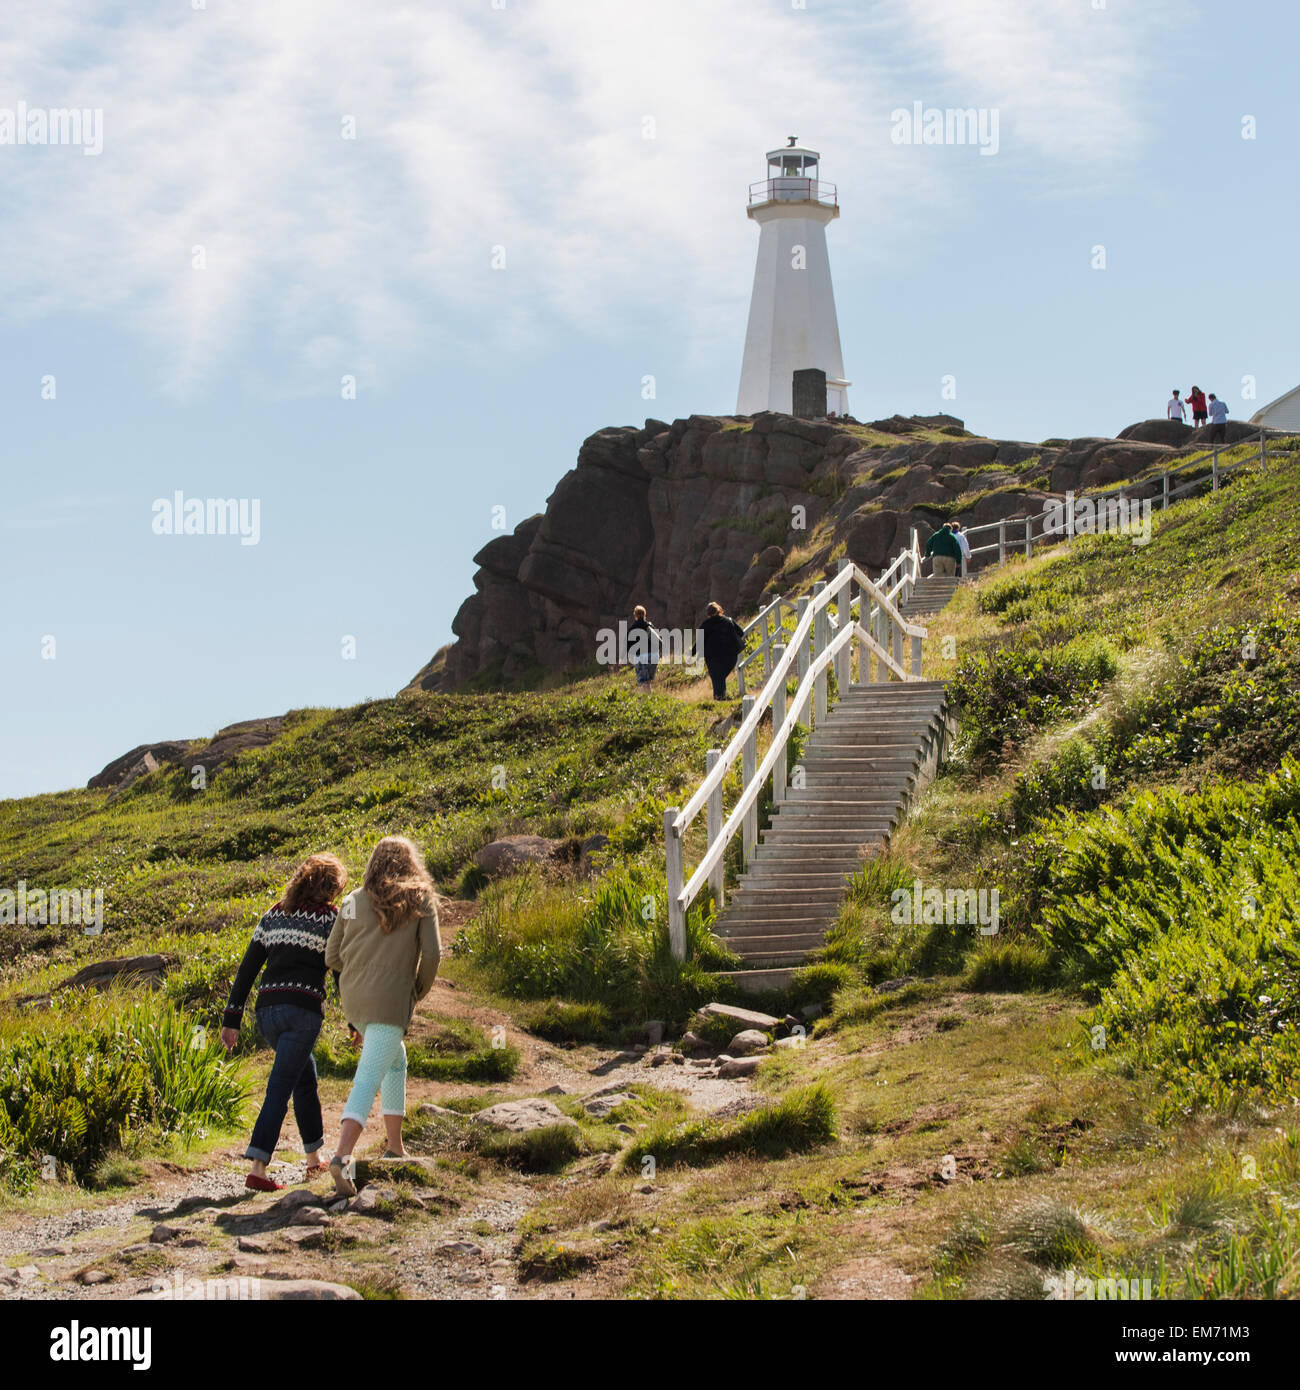 Tourists walking to steps leading up to a lighthouse on Cape Spear; St. John's, Newfoundland and Labrador, Canada - Stock Image